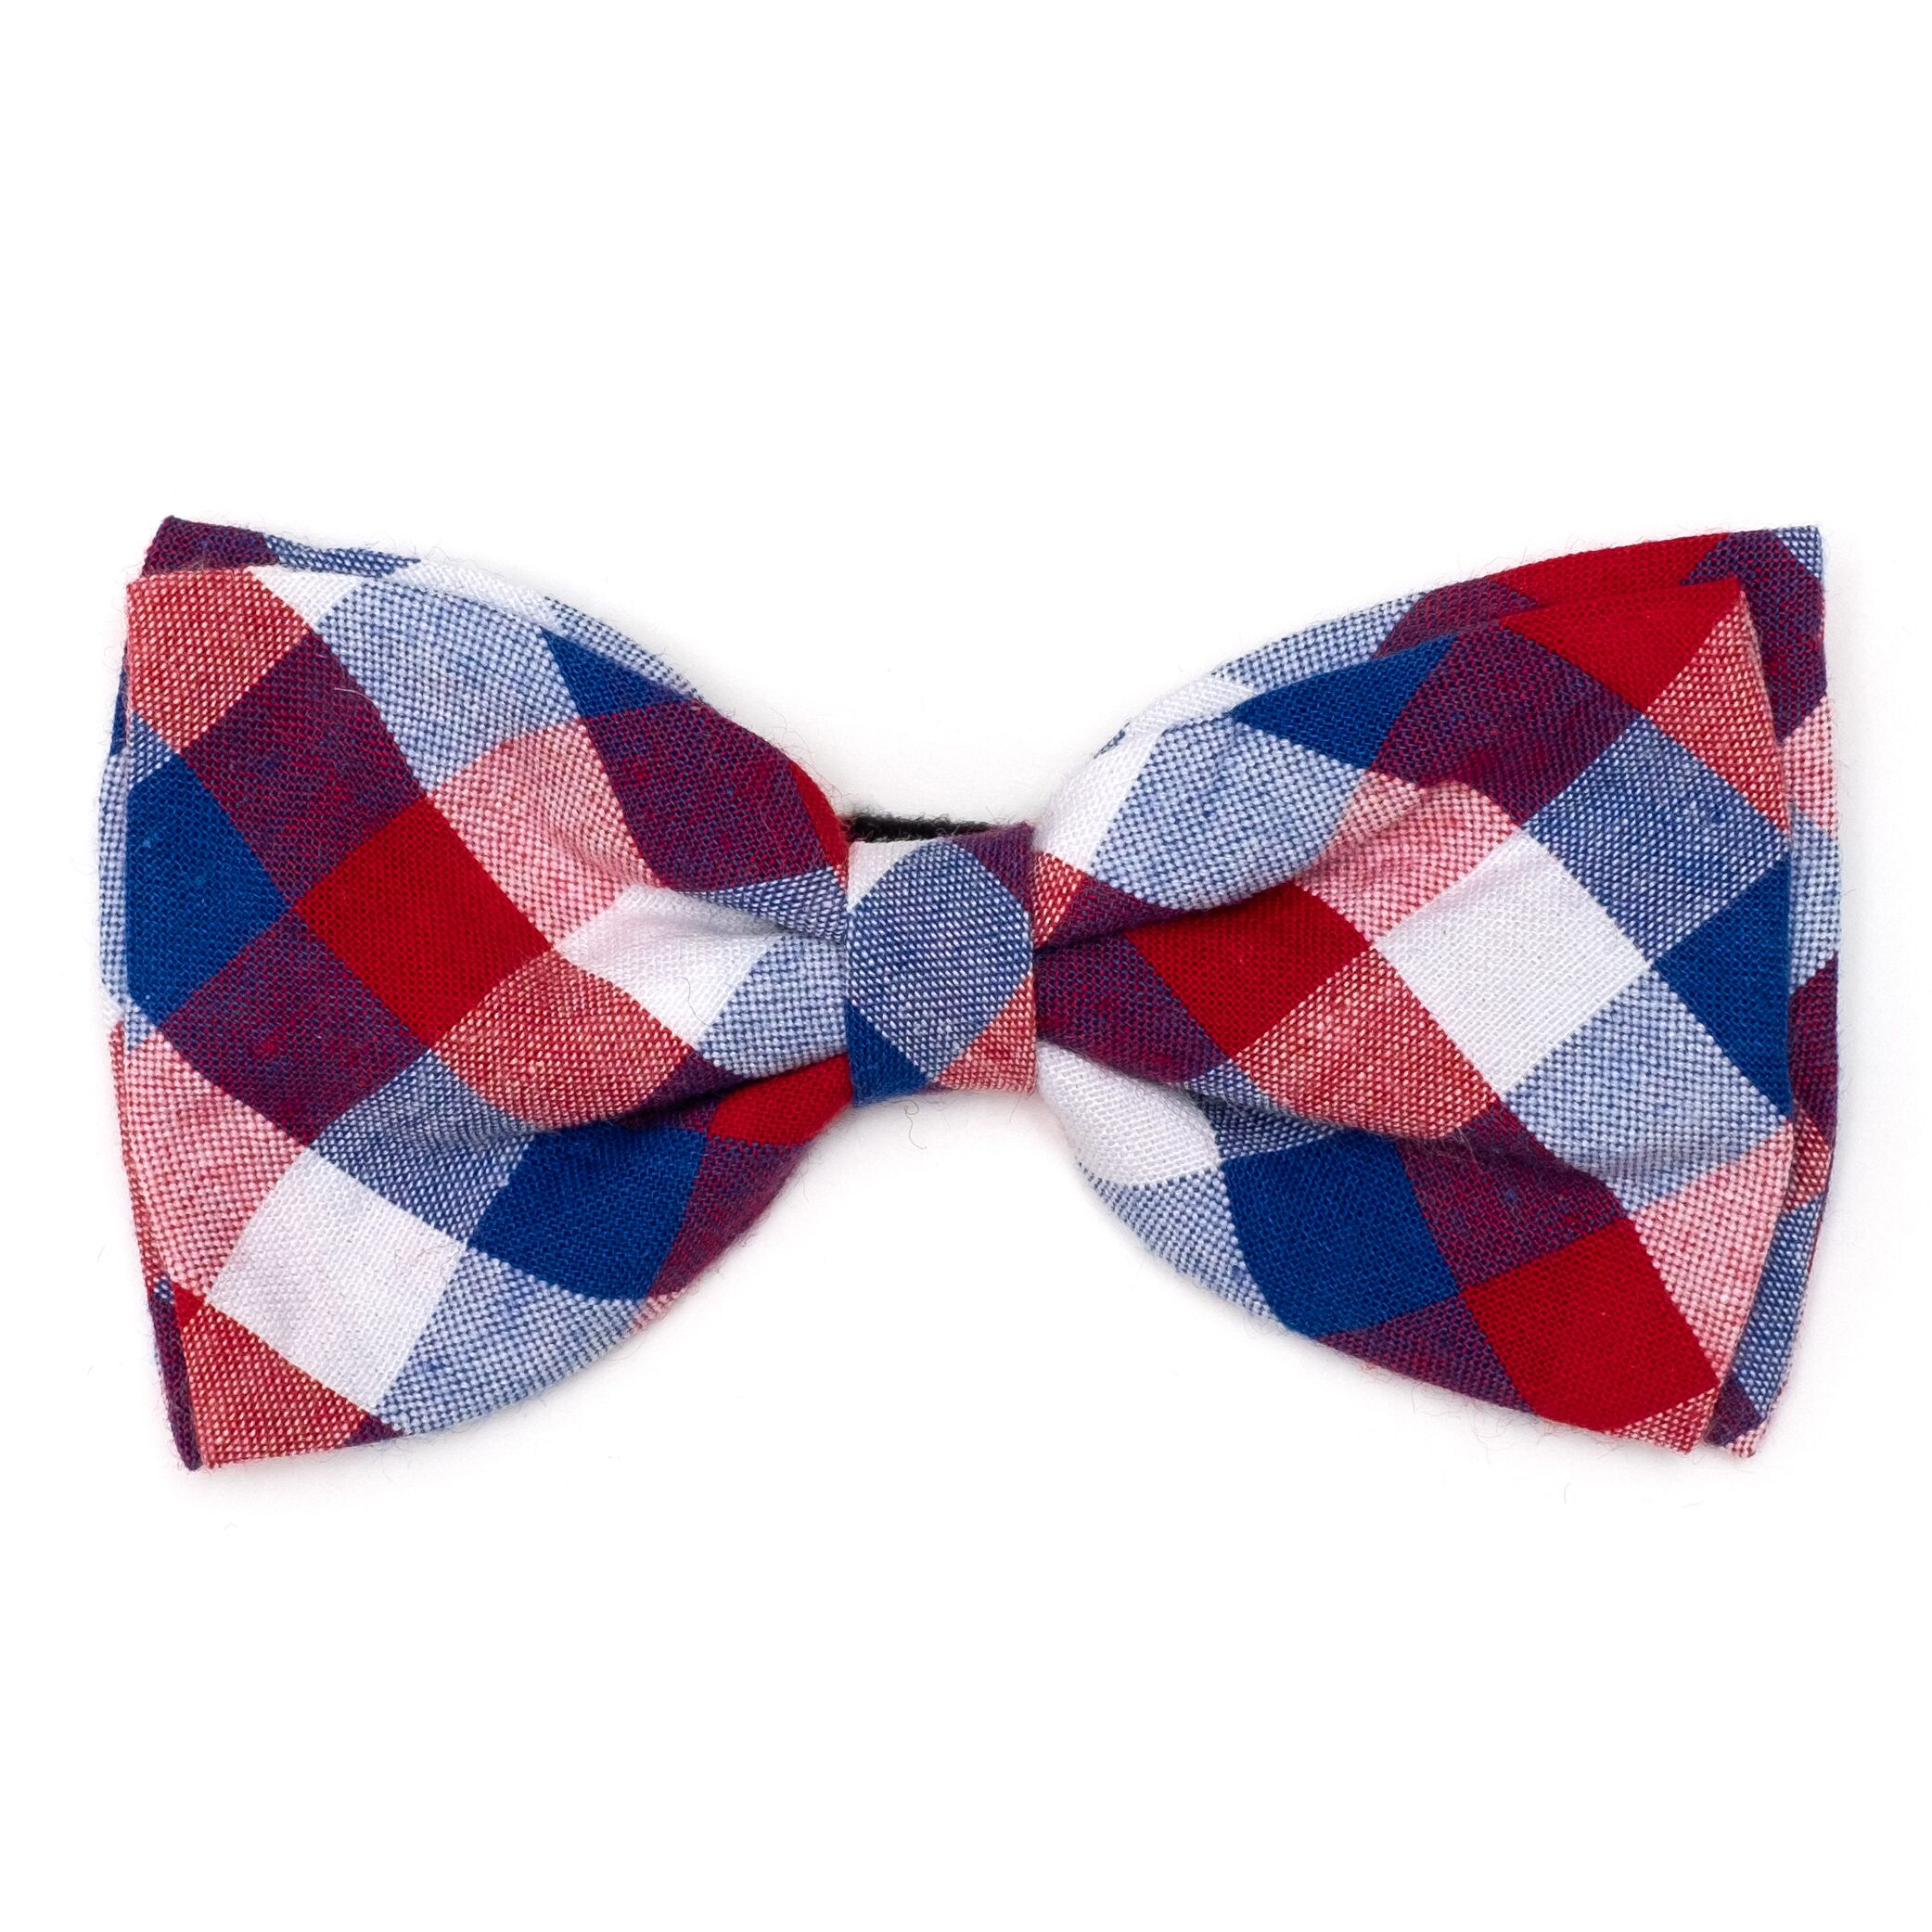 The Worthy Dog Bow Tie, Red, White & Blue Check, Large